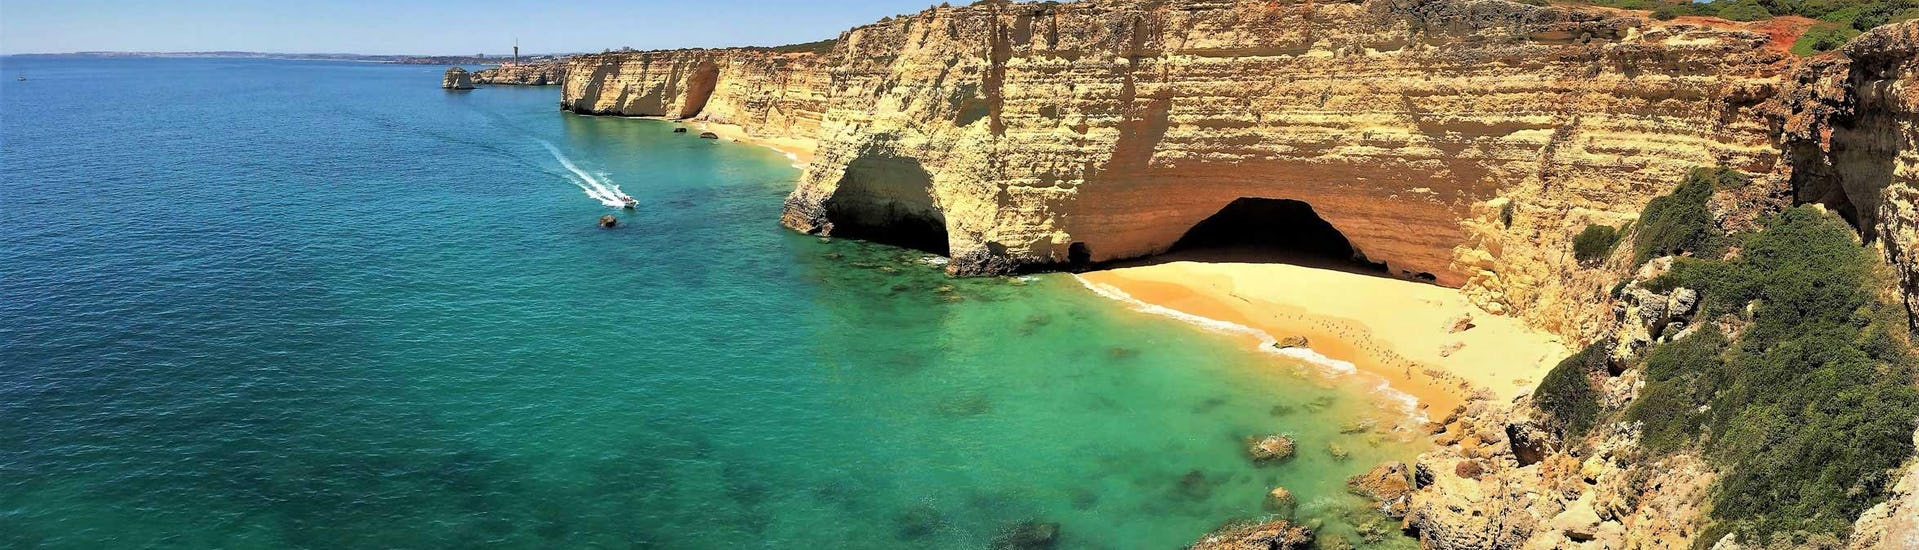 An image of the Algarve coastline where Seasiren Tours offers boat tours to the Benagil Caves.